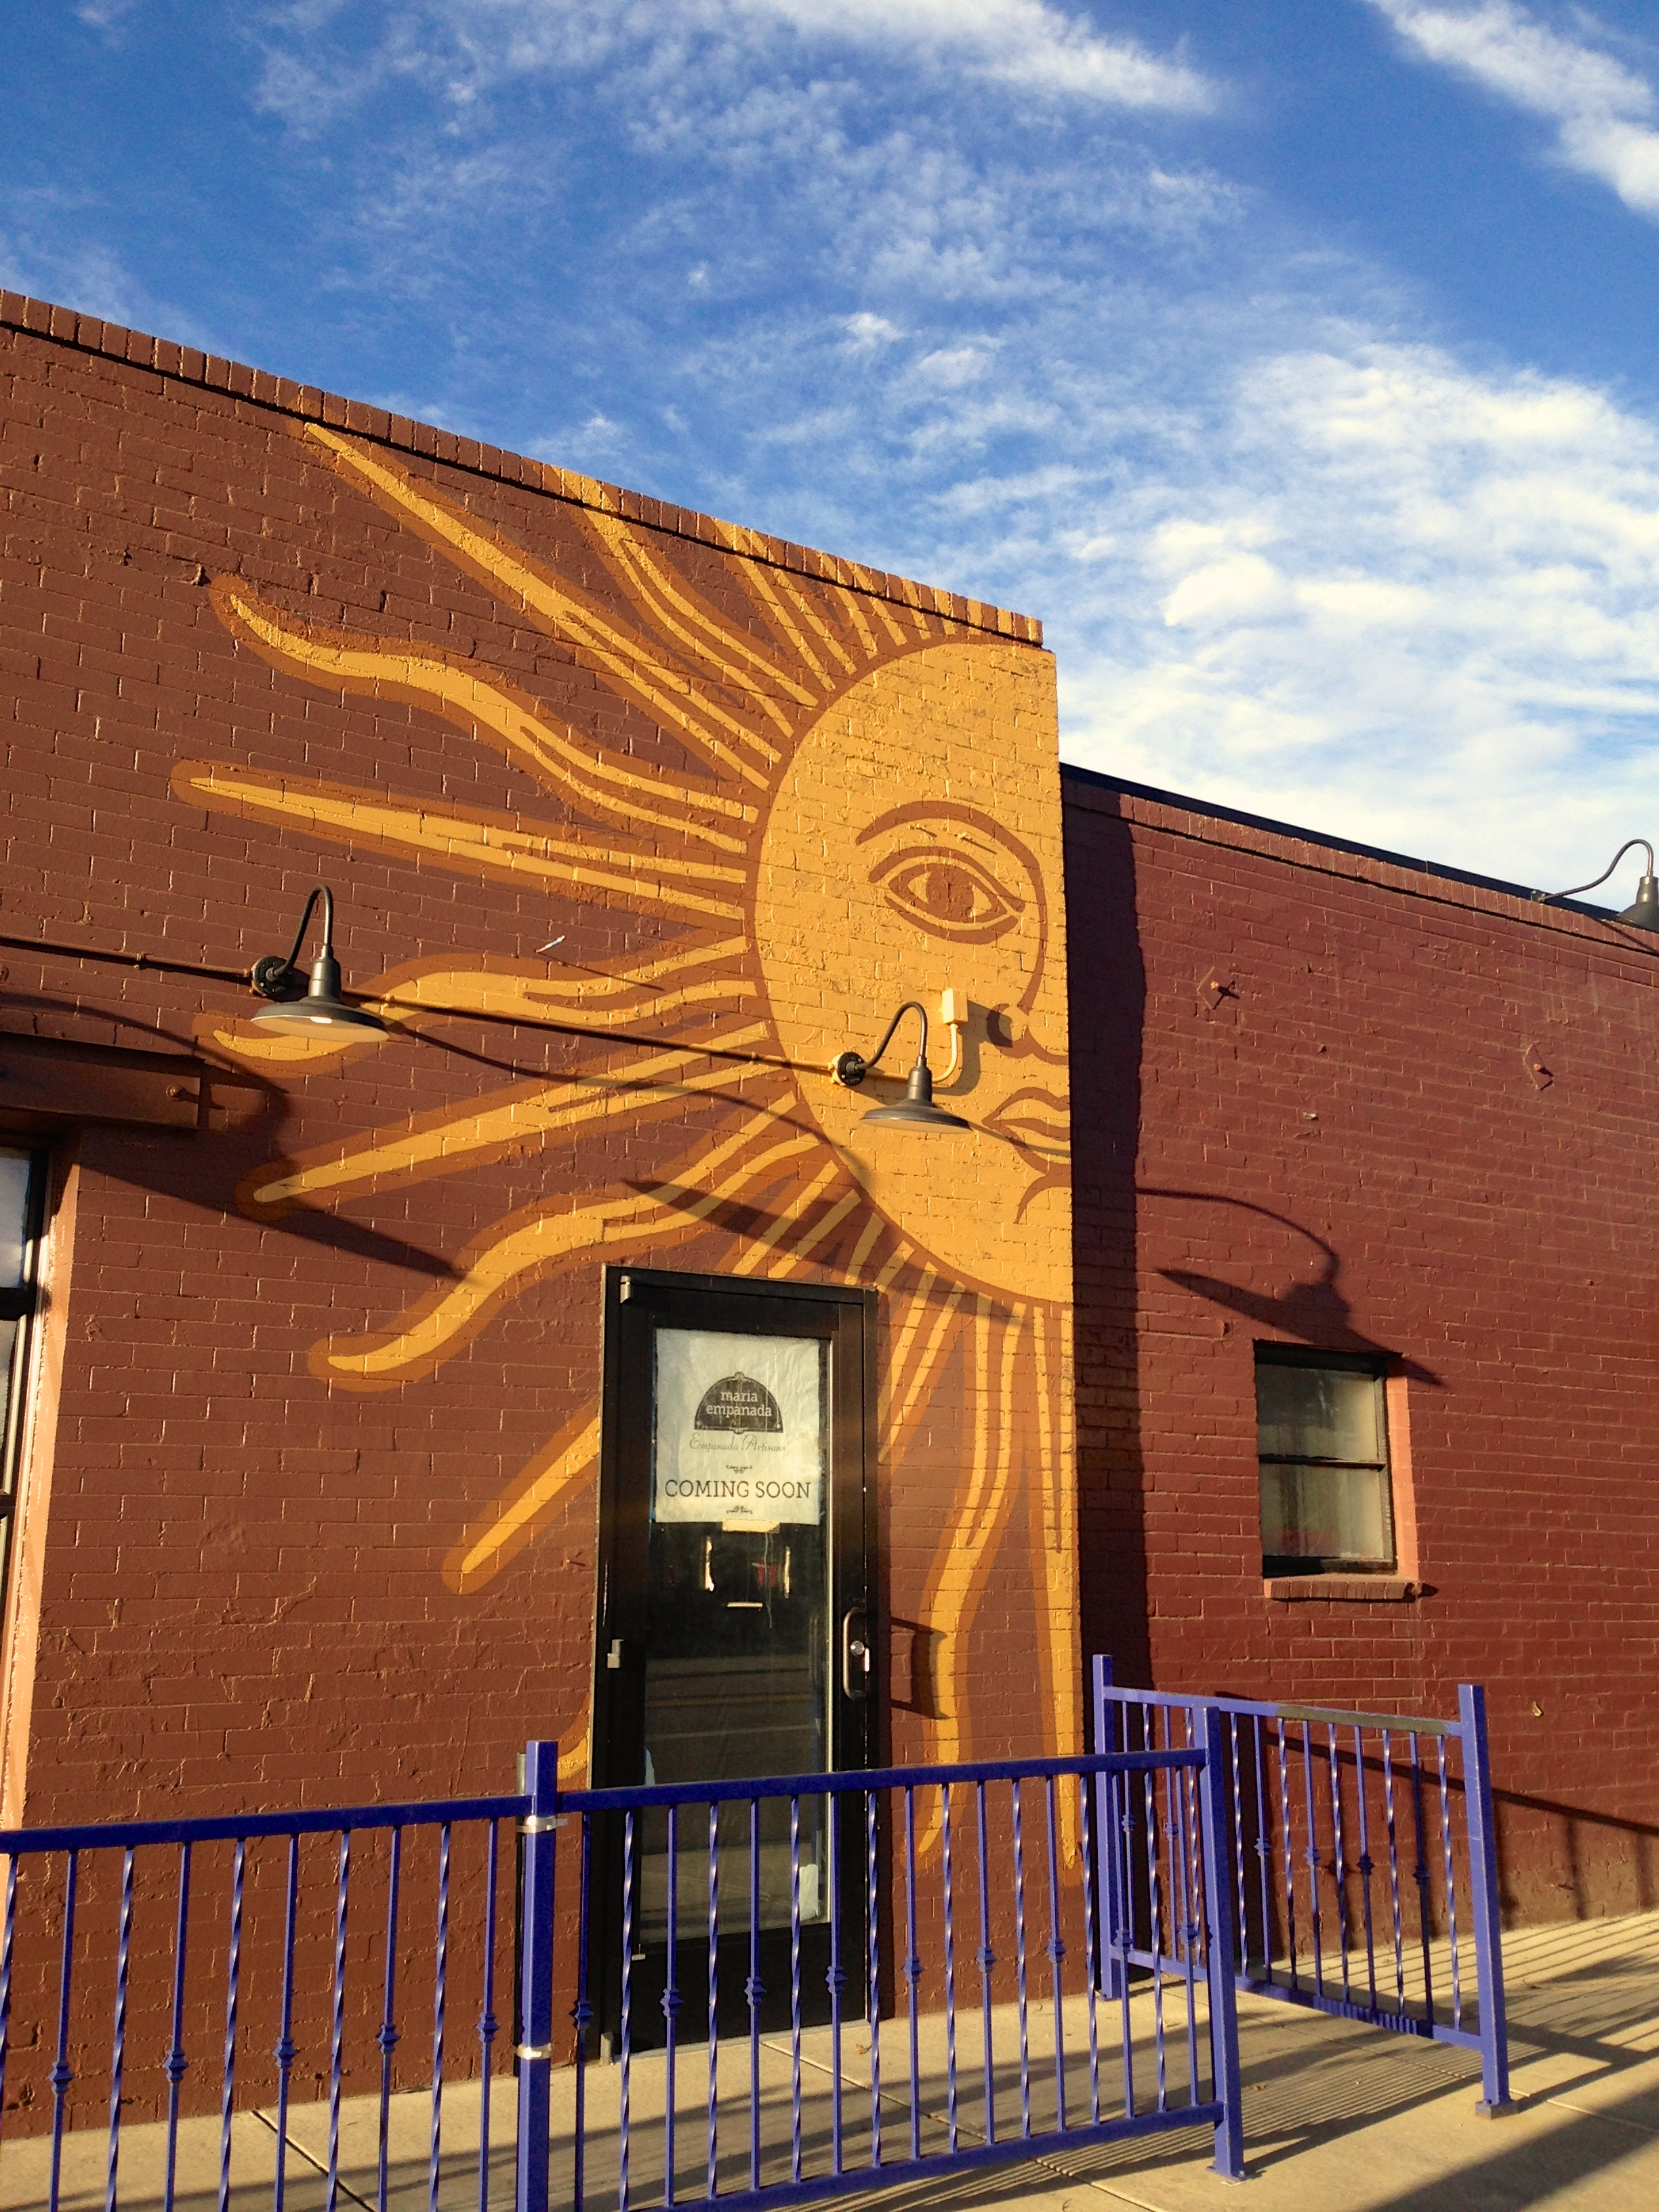 Half sun mural completed on the south side.